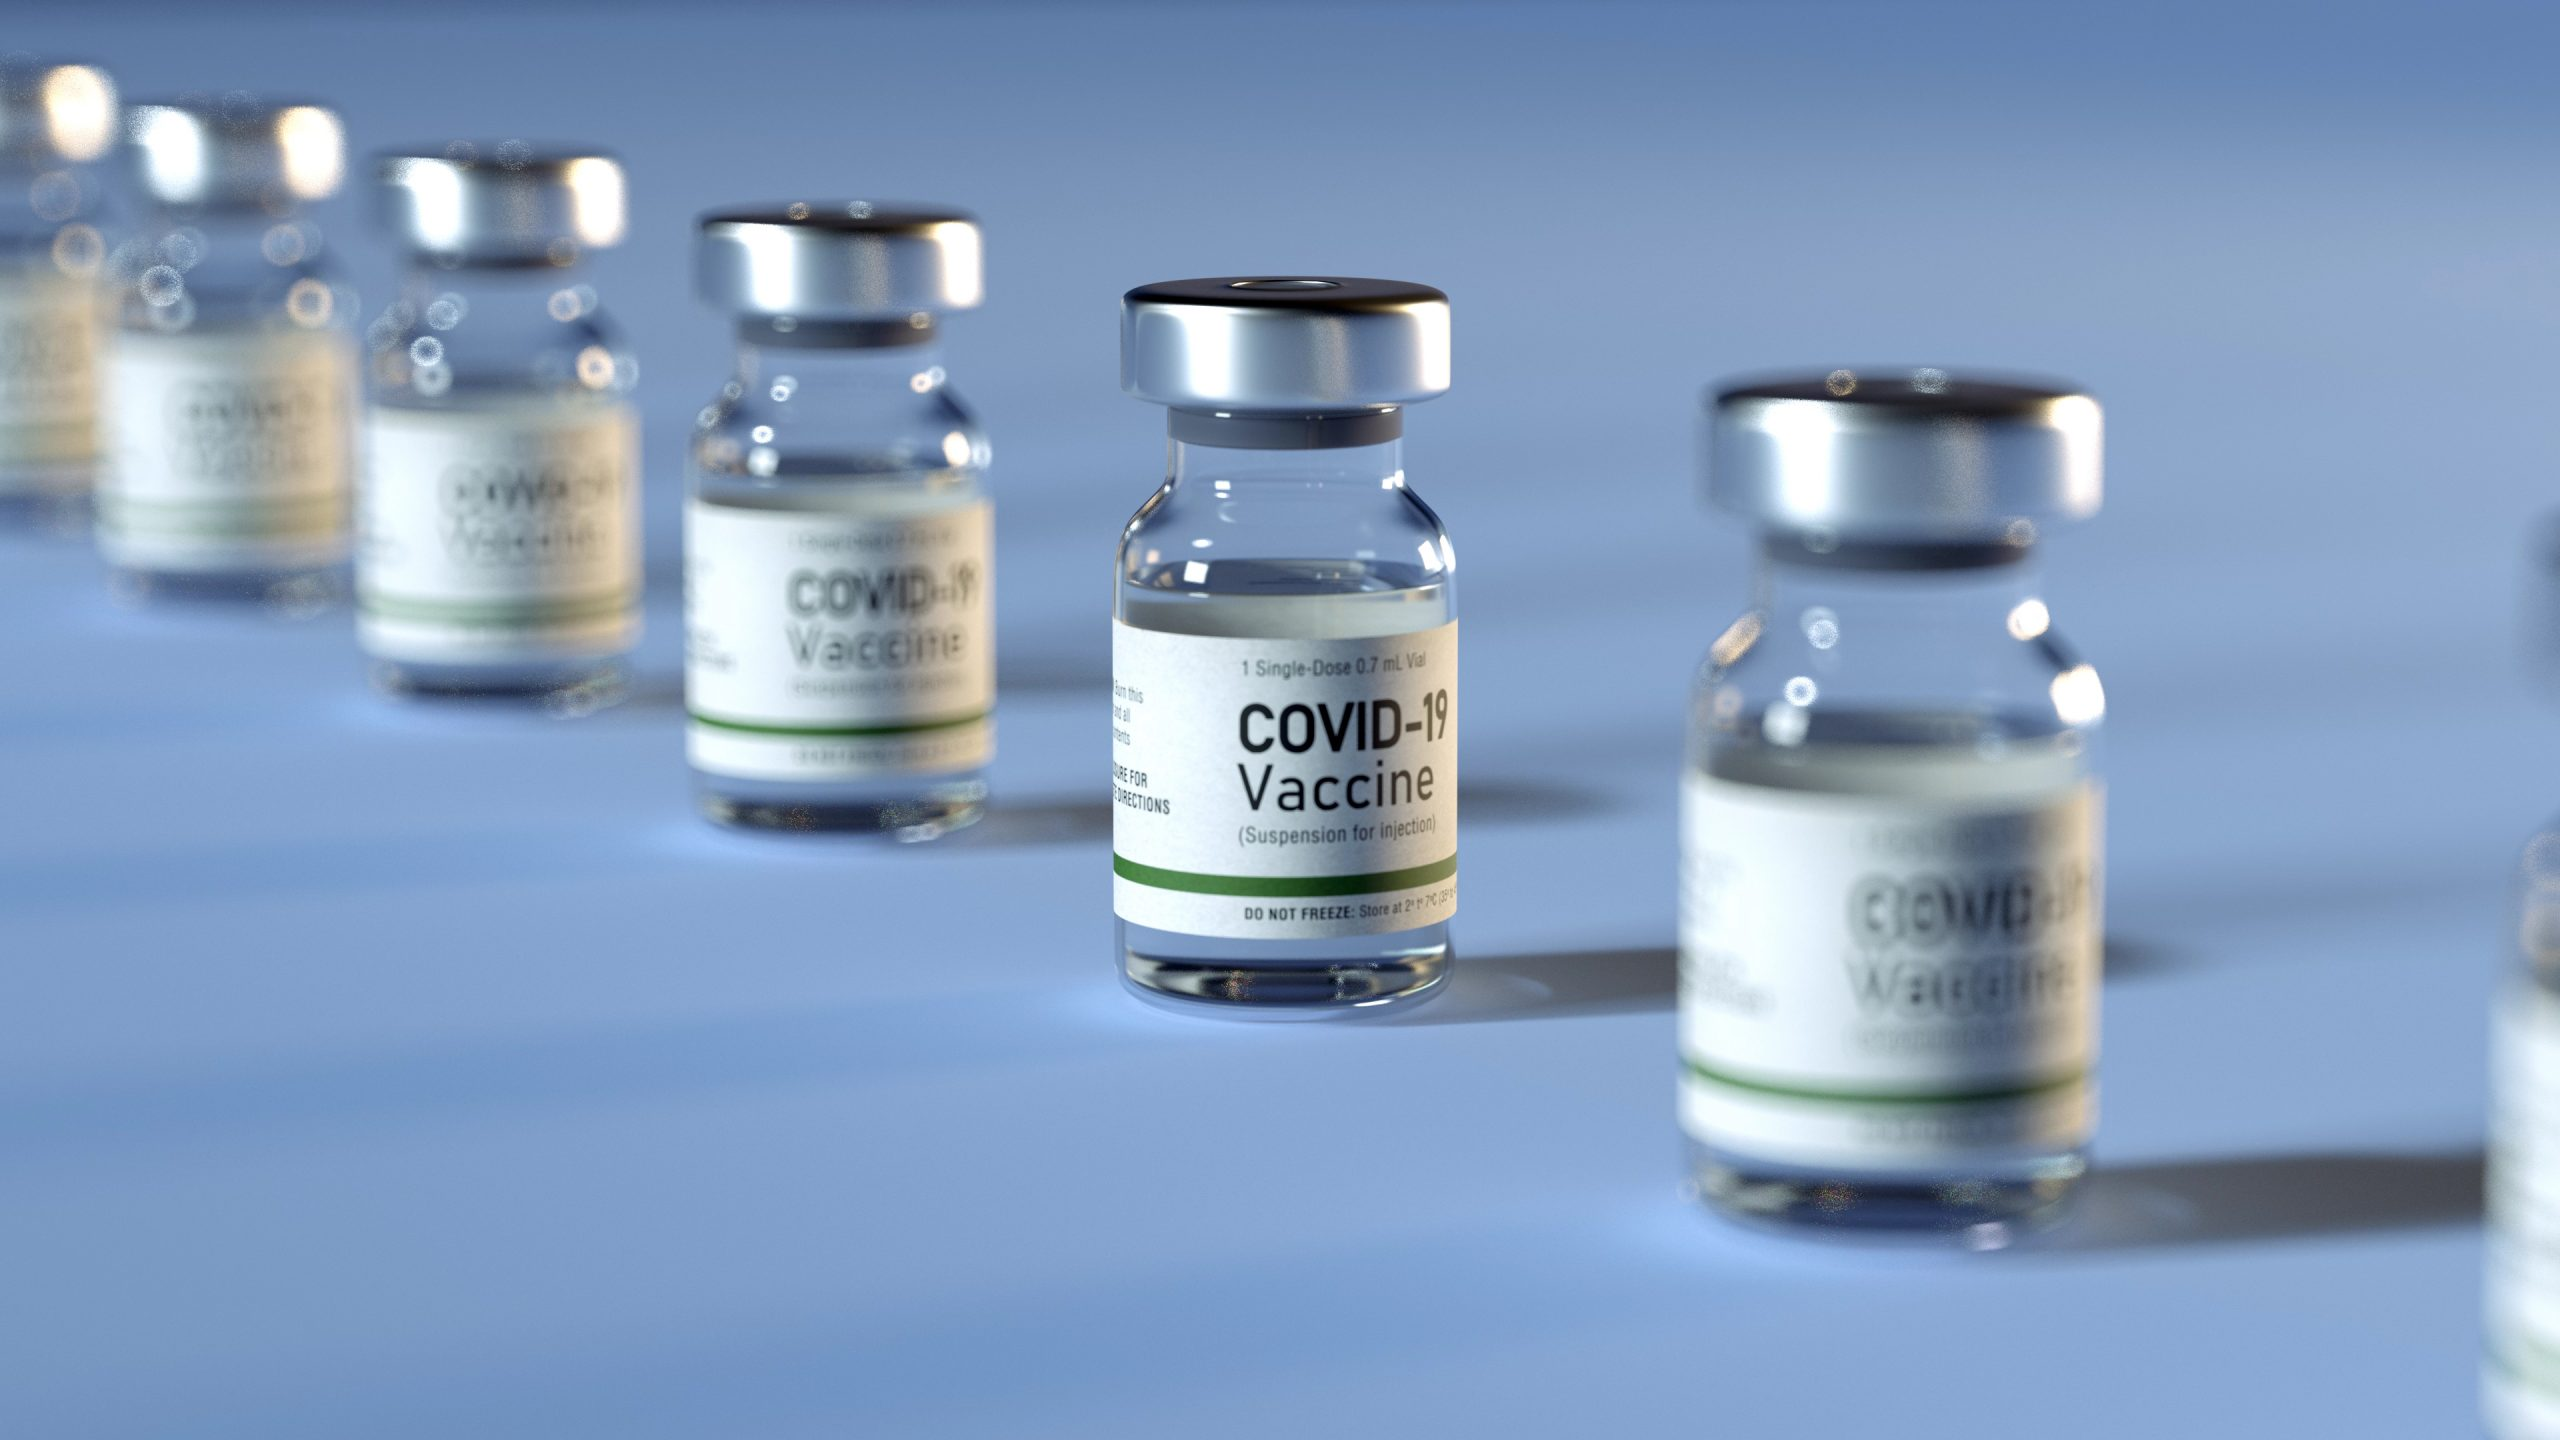 COVID-19 vaccine and fertility myths